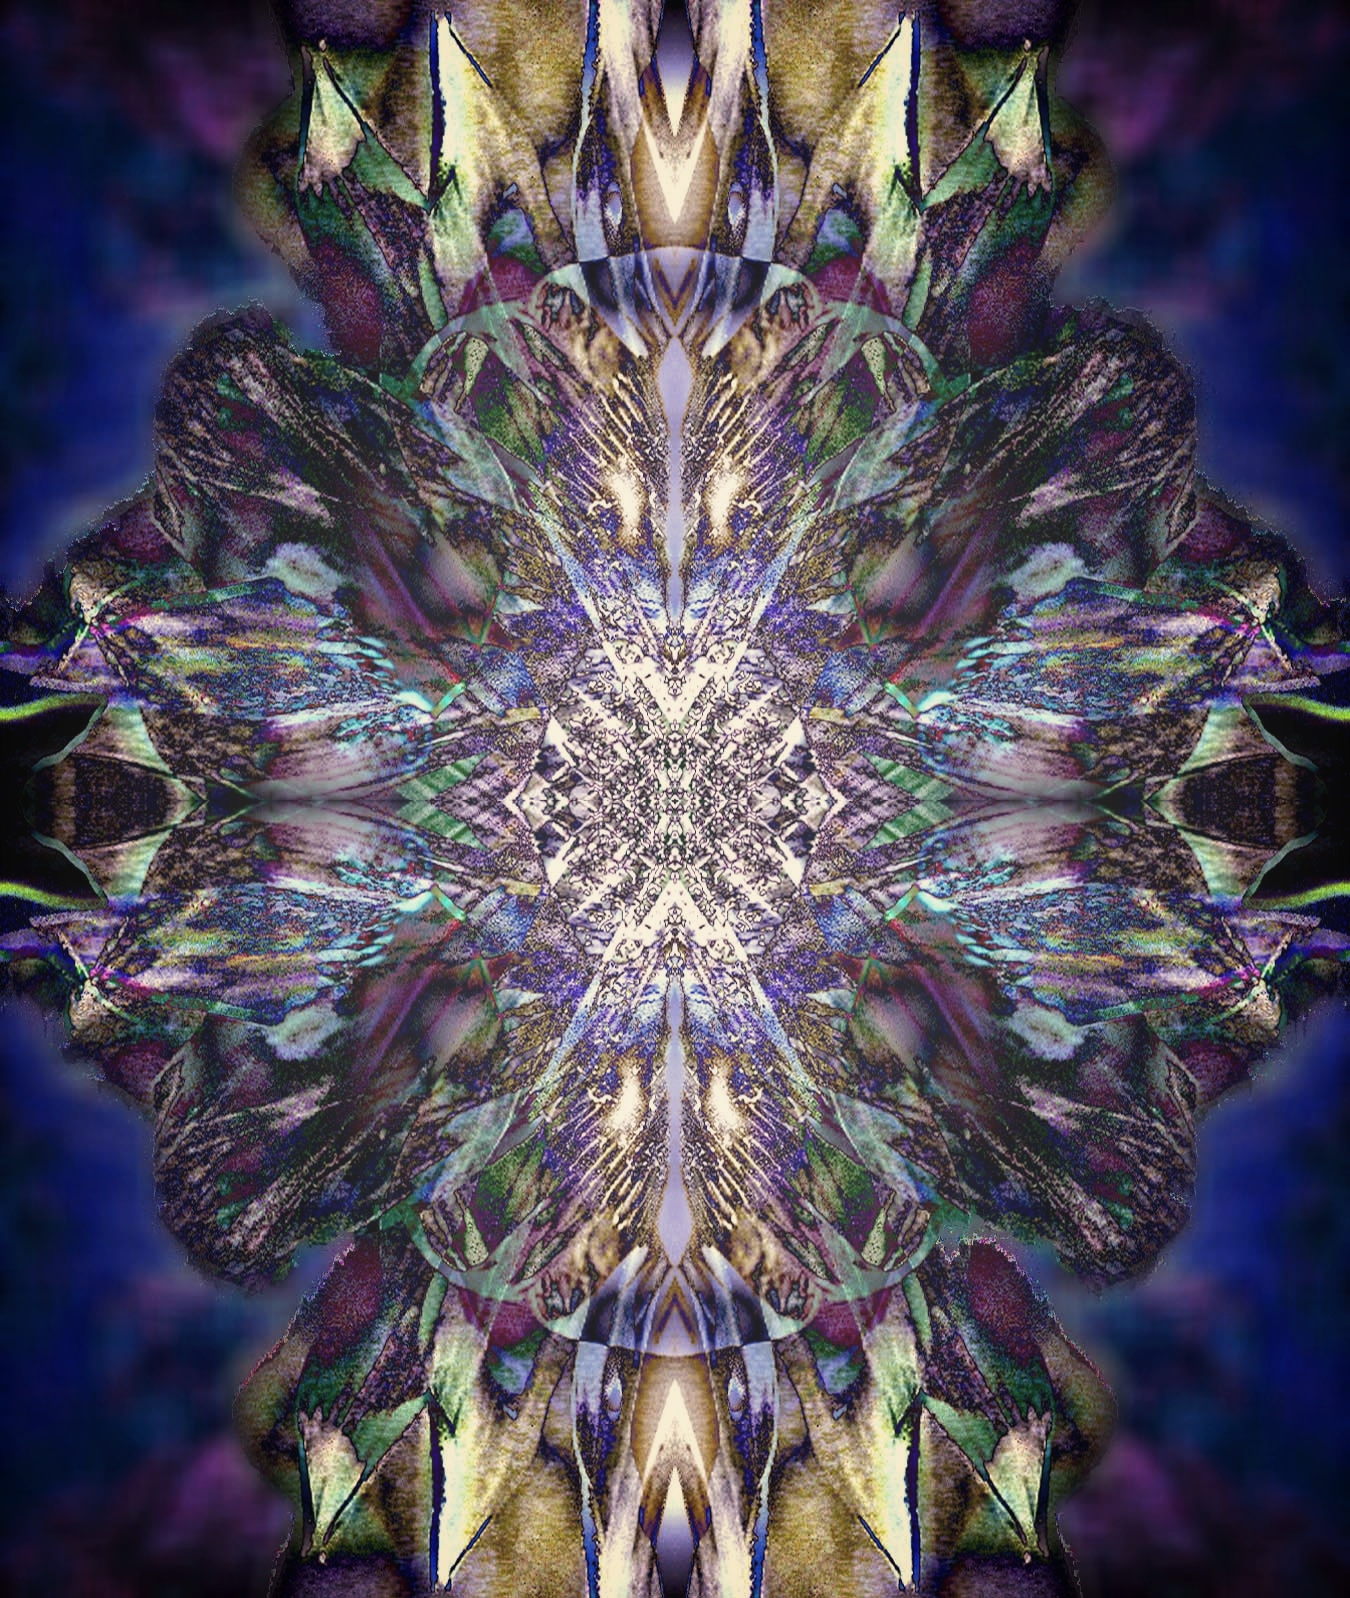 SURRENDER  TO THE  CLEAR  TRANSPARENT  GUIDANCE  THAT LIVES  IN THE  WISDOM  OF YOUR  CRYSTALLINE  HEART